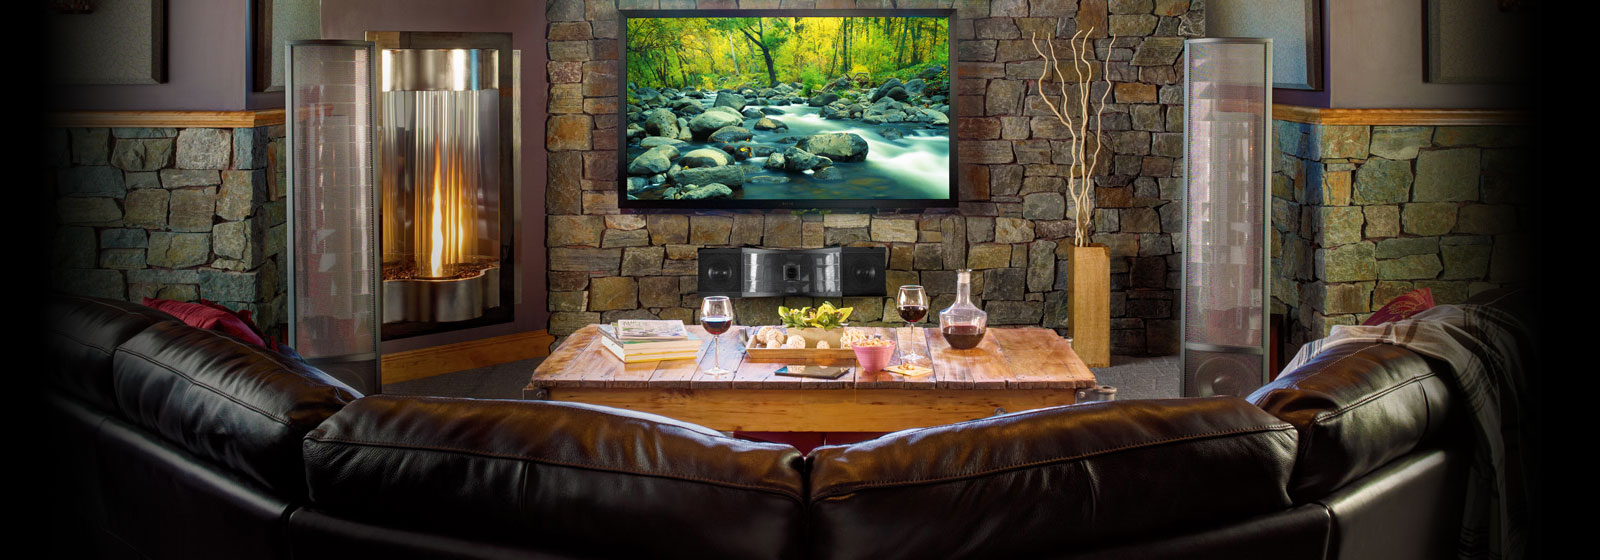 Magnolia Home Theater | Best Buy Magnolia Locations | Best Buy Westchester